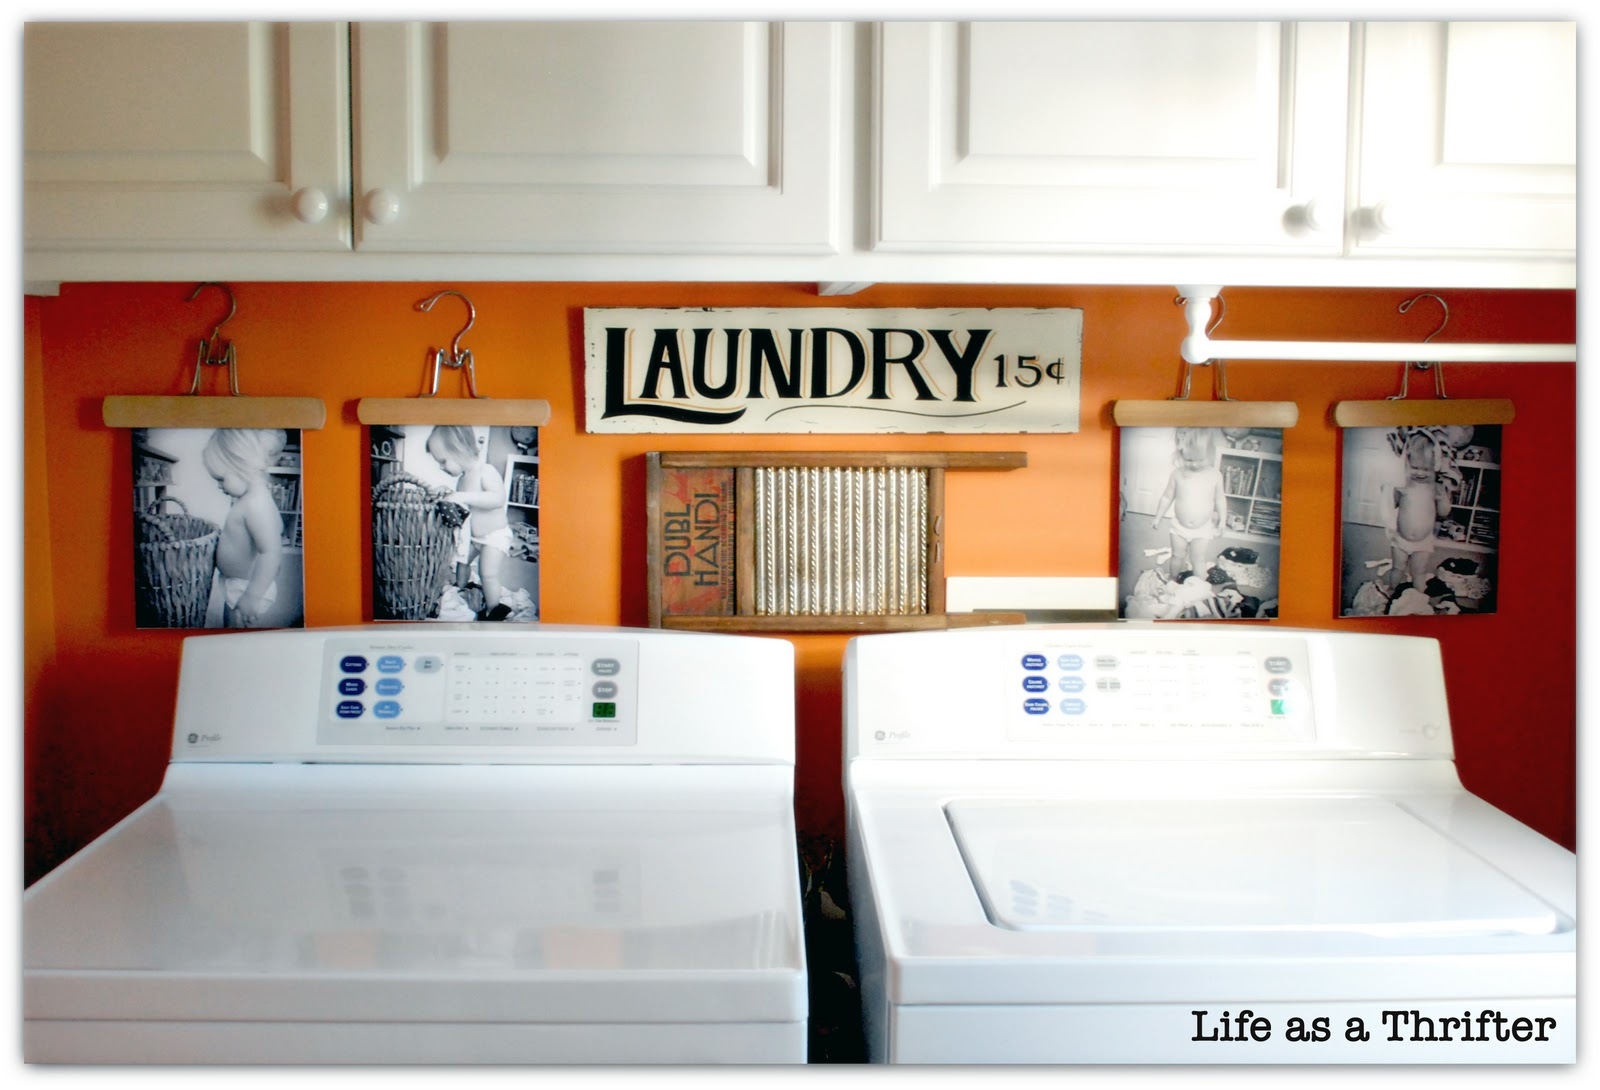 Life as a thrifter diy laundry room display for Decorate a laundry room